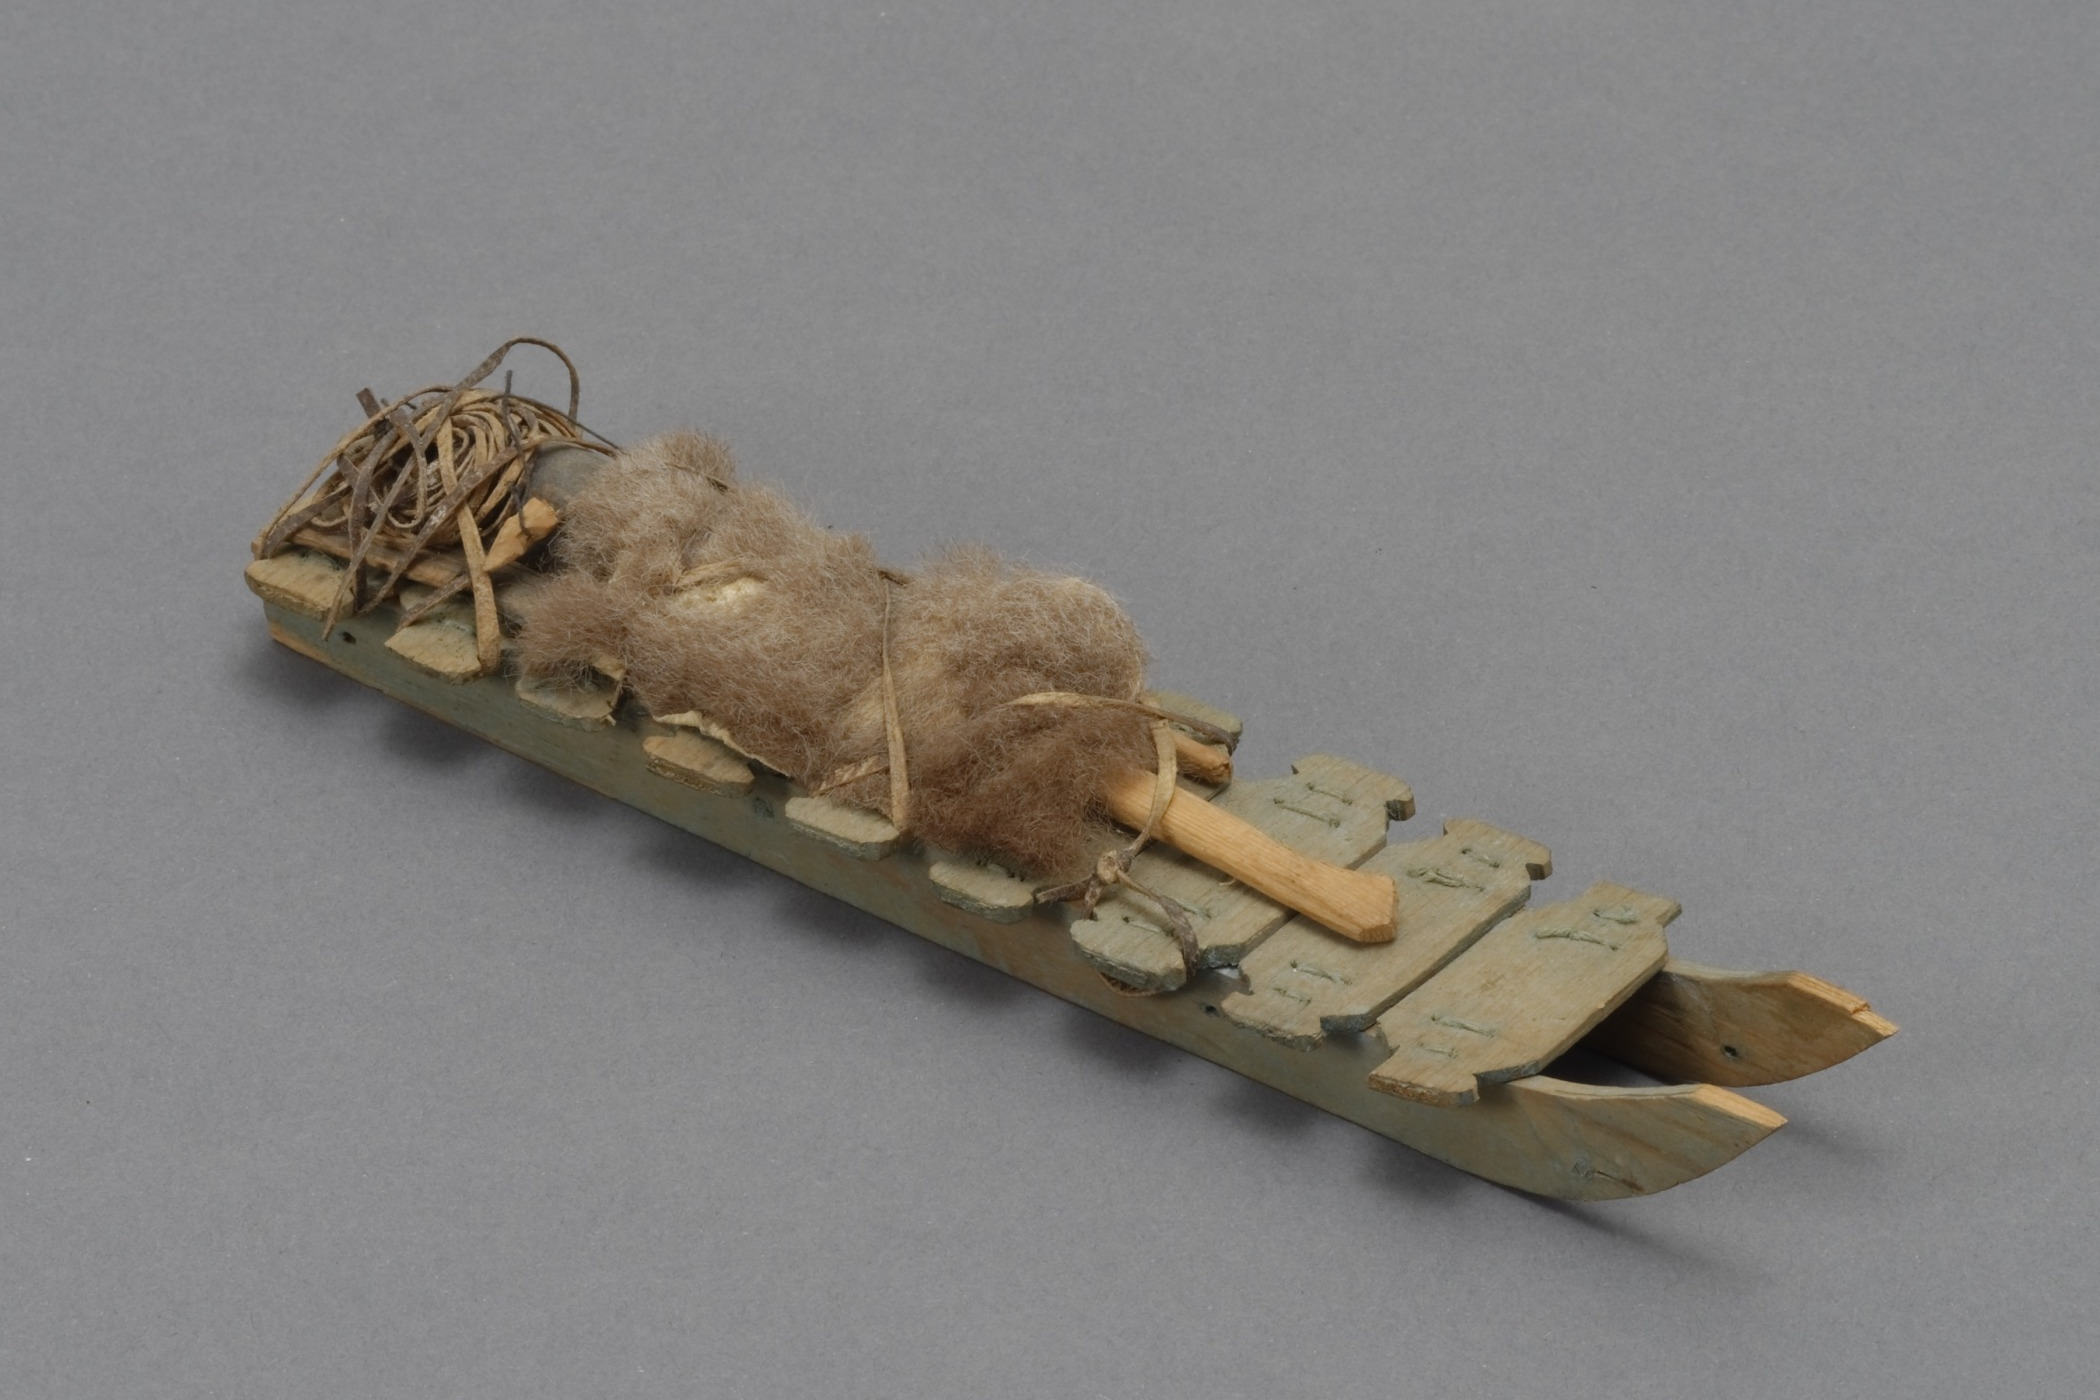 Canadian (Inuit), model sled, collected 1929–30. Wood, fur, leather, and thread, 3/4 × 1 9/16 × 6 15/16 in. Hood Museum of Art, Dartmouth College: Gift of Robert O. Fernald, Class of 1936; 158.25.14218.